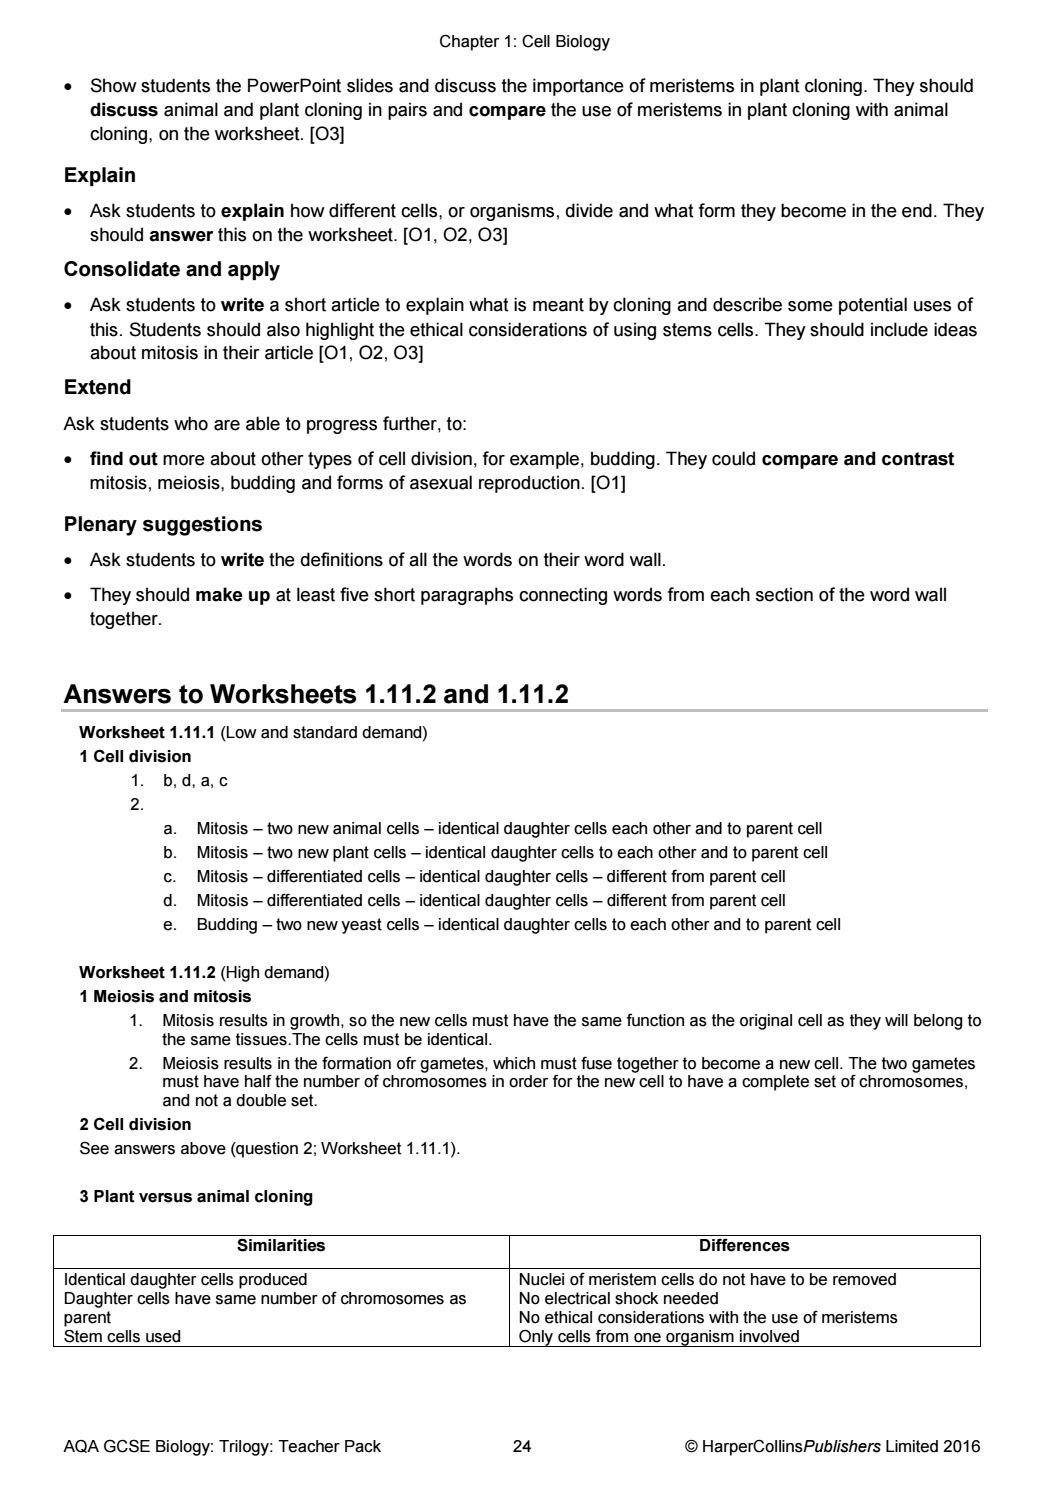 Cell Cycle Worksheet Answers Aqa Gcse 9 1 Bined Science Trilogy Teacher Pack by